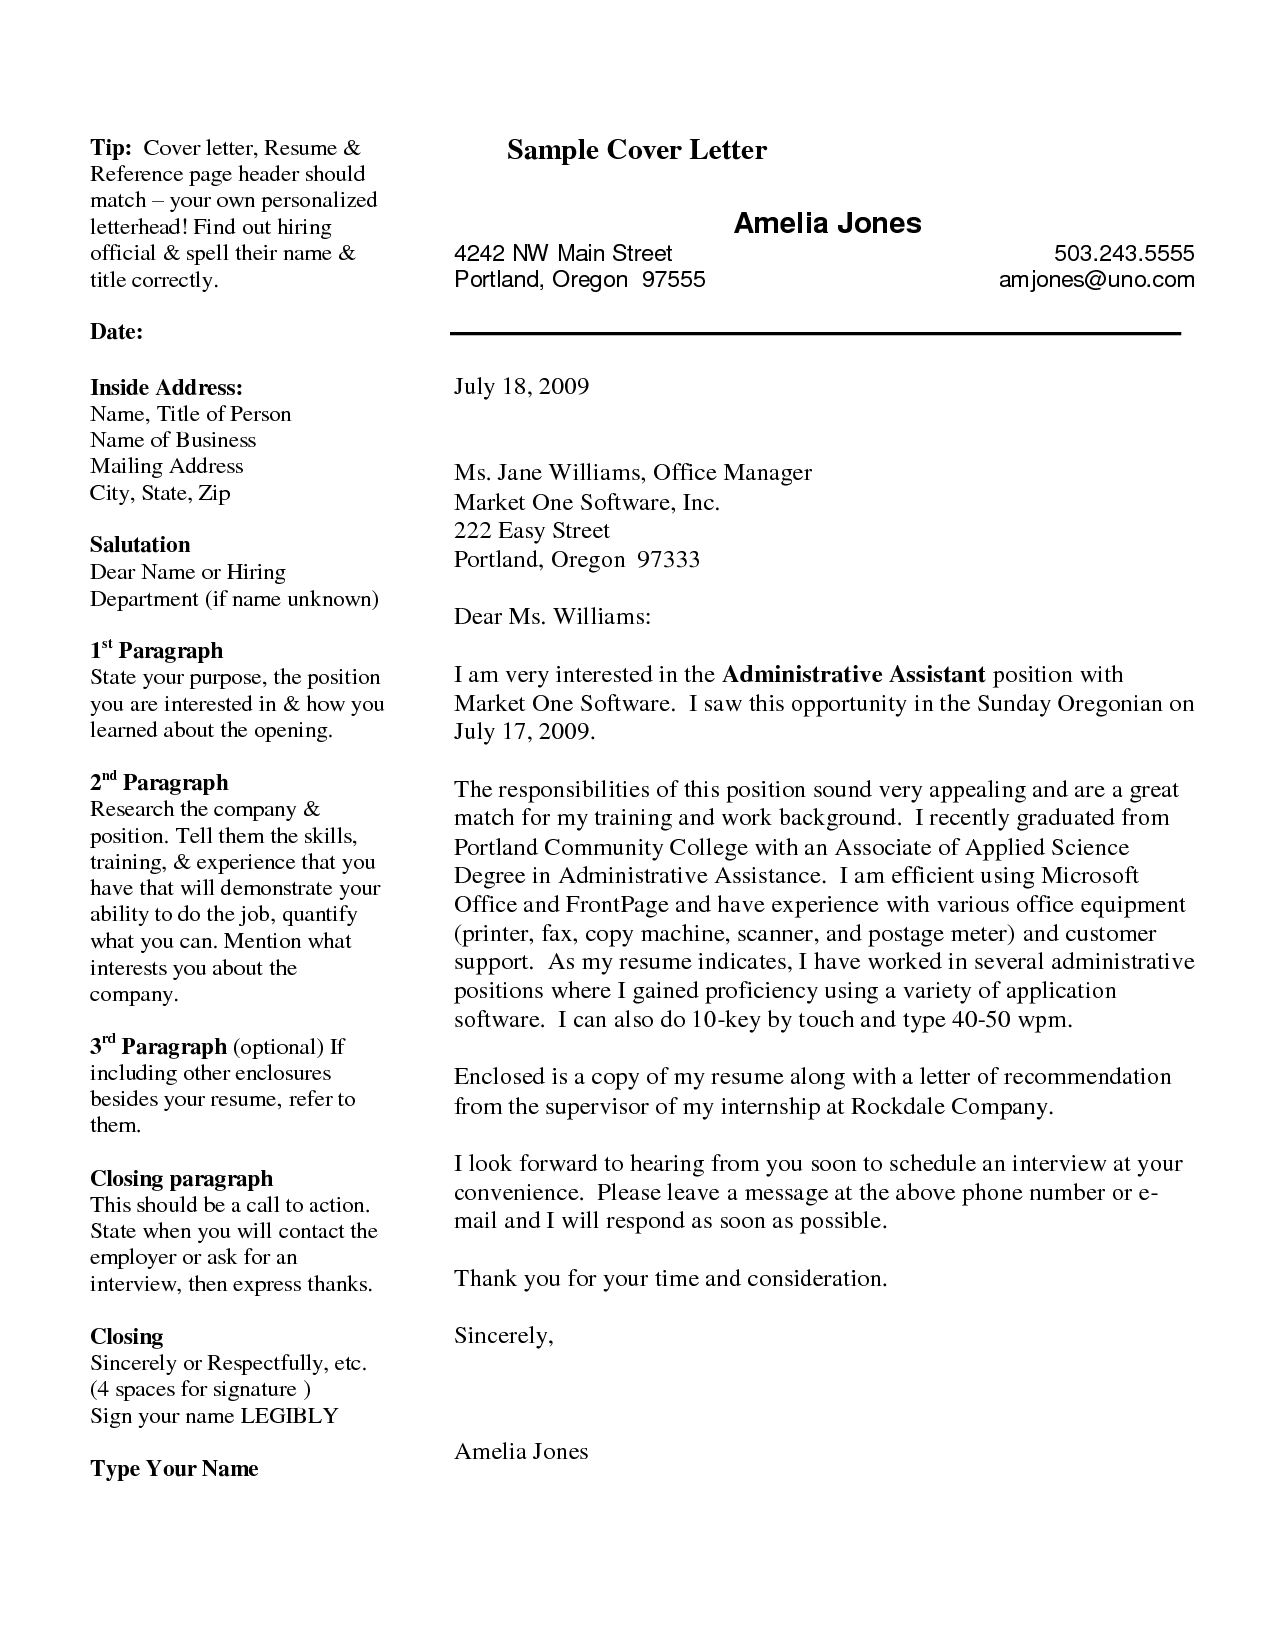 Professional Resume Cover Letter SamplesProfessional Resume Cover Letter  Samples Professional Resume Cover Letter Samples,how  Cover Letter Or Resume